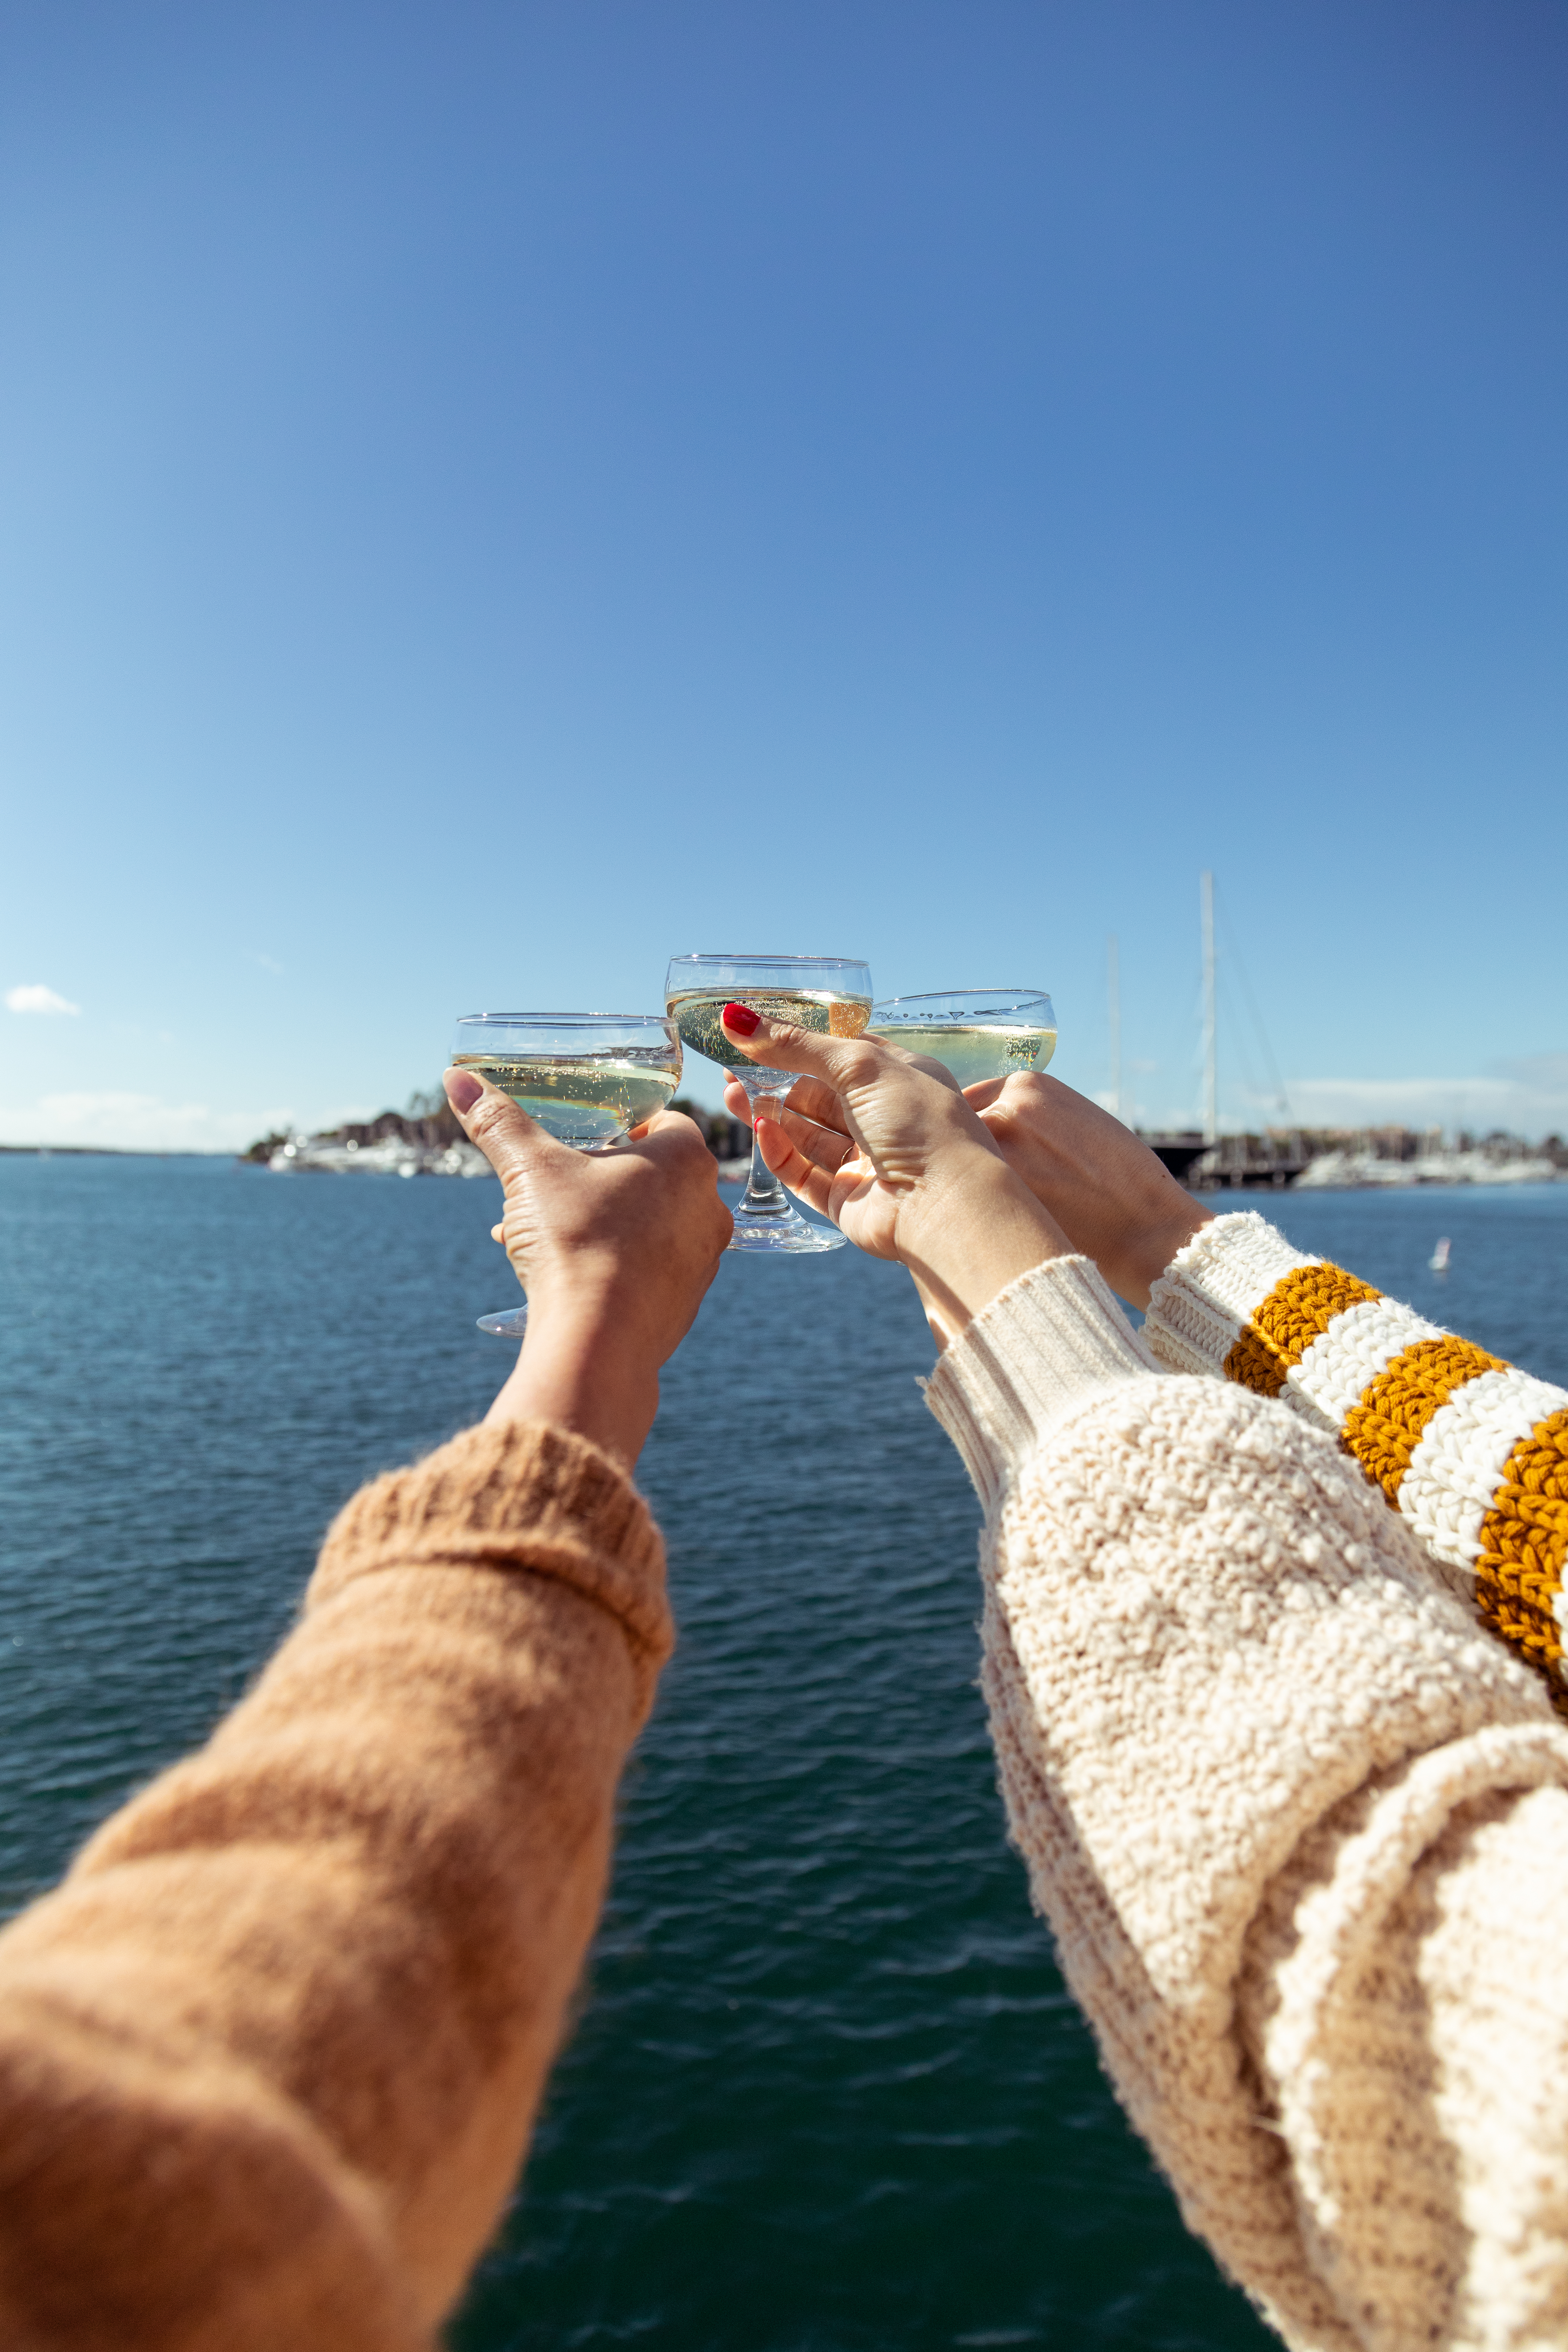 Dinner Cruises, Yacht Charters & Weddings on the Water | Hornblower